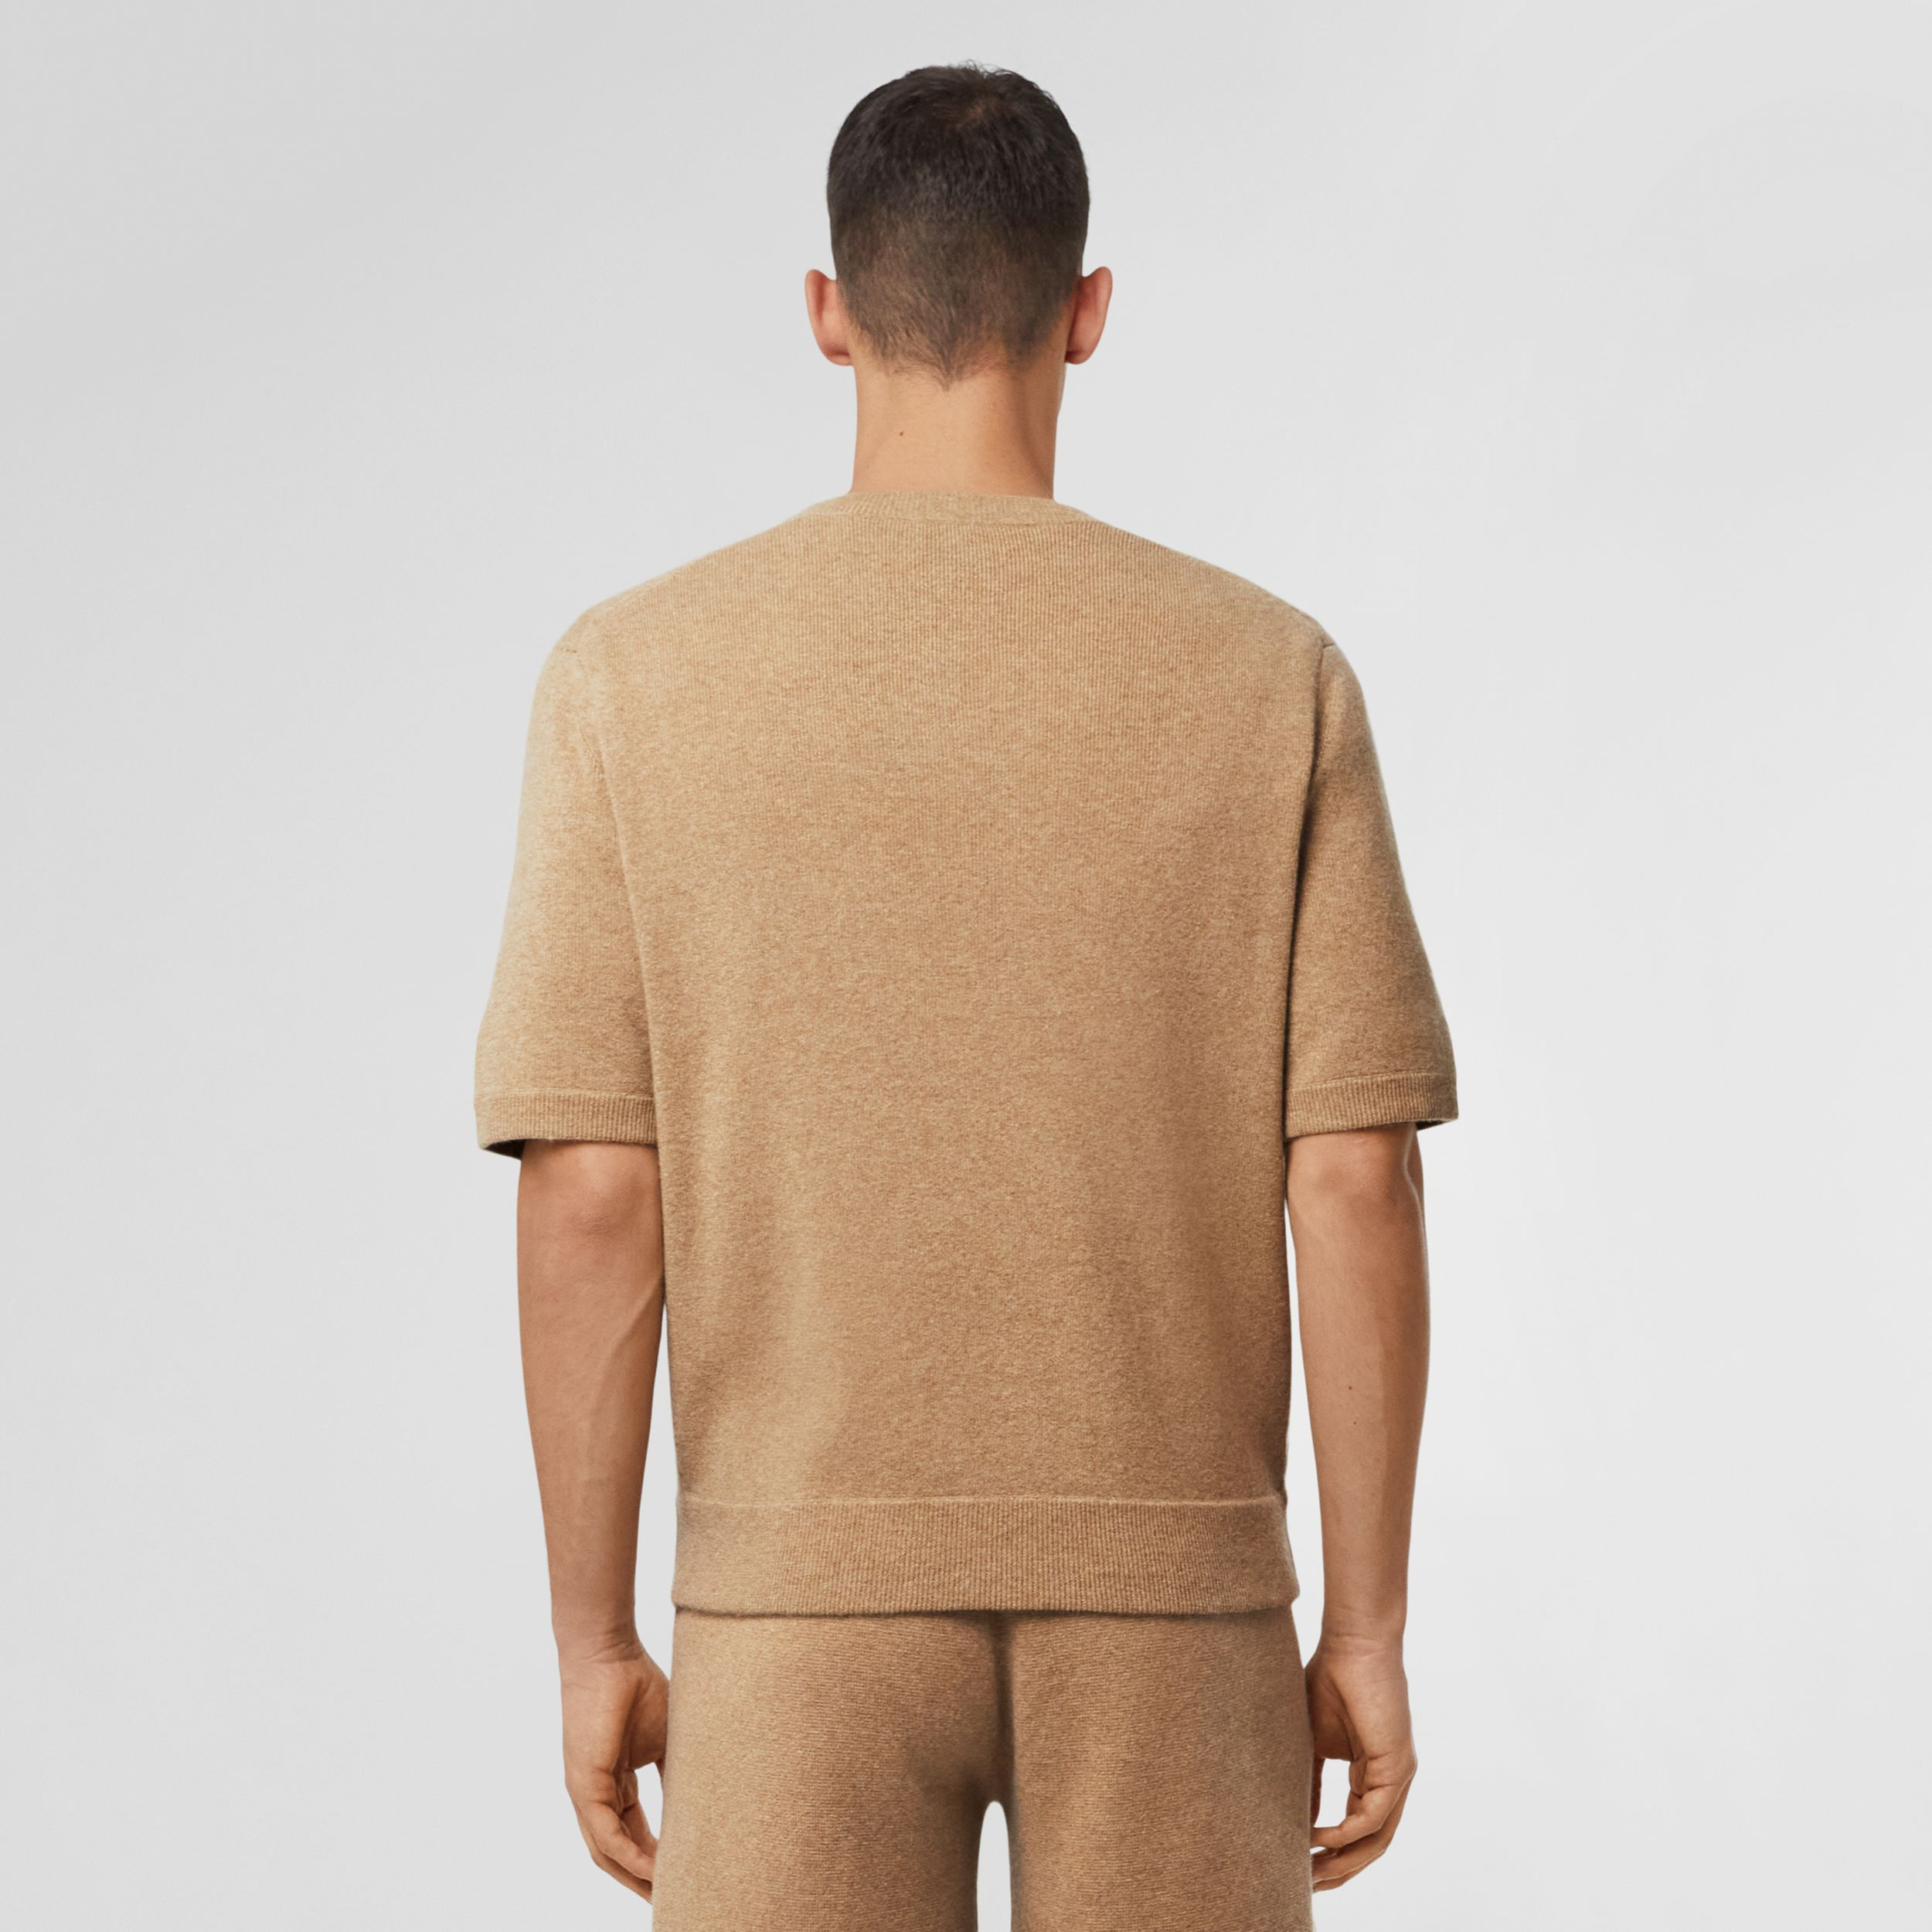 Short-sleeve Monogram Motif Cashmere Top in Pale Coffee - Men | Burberry - 3